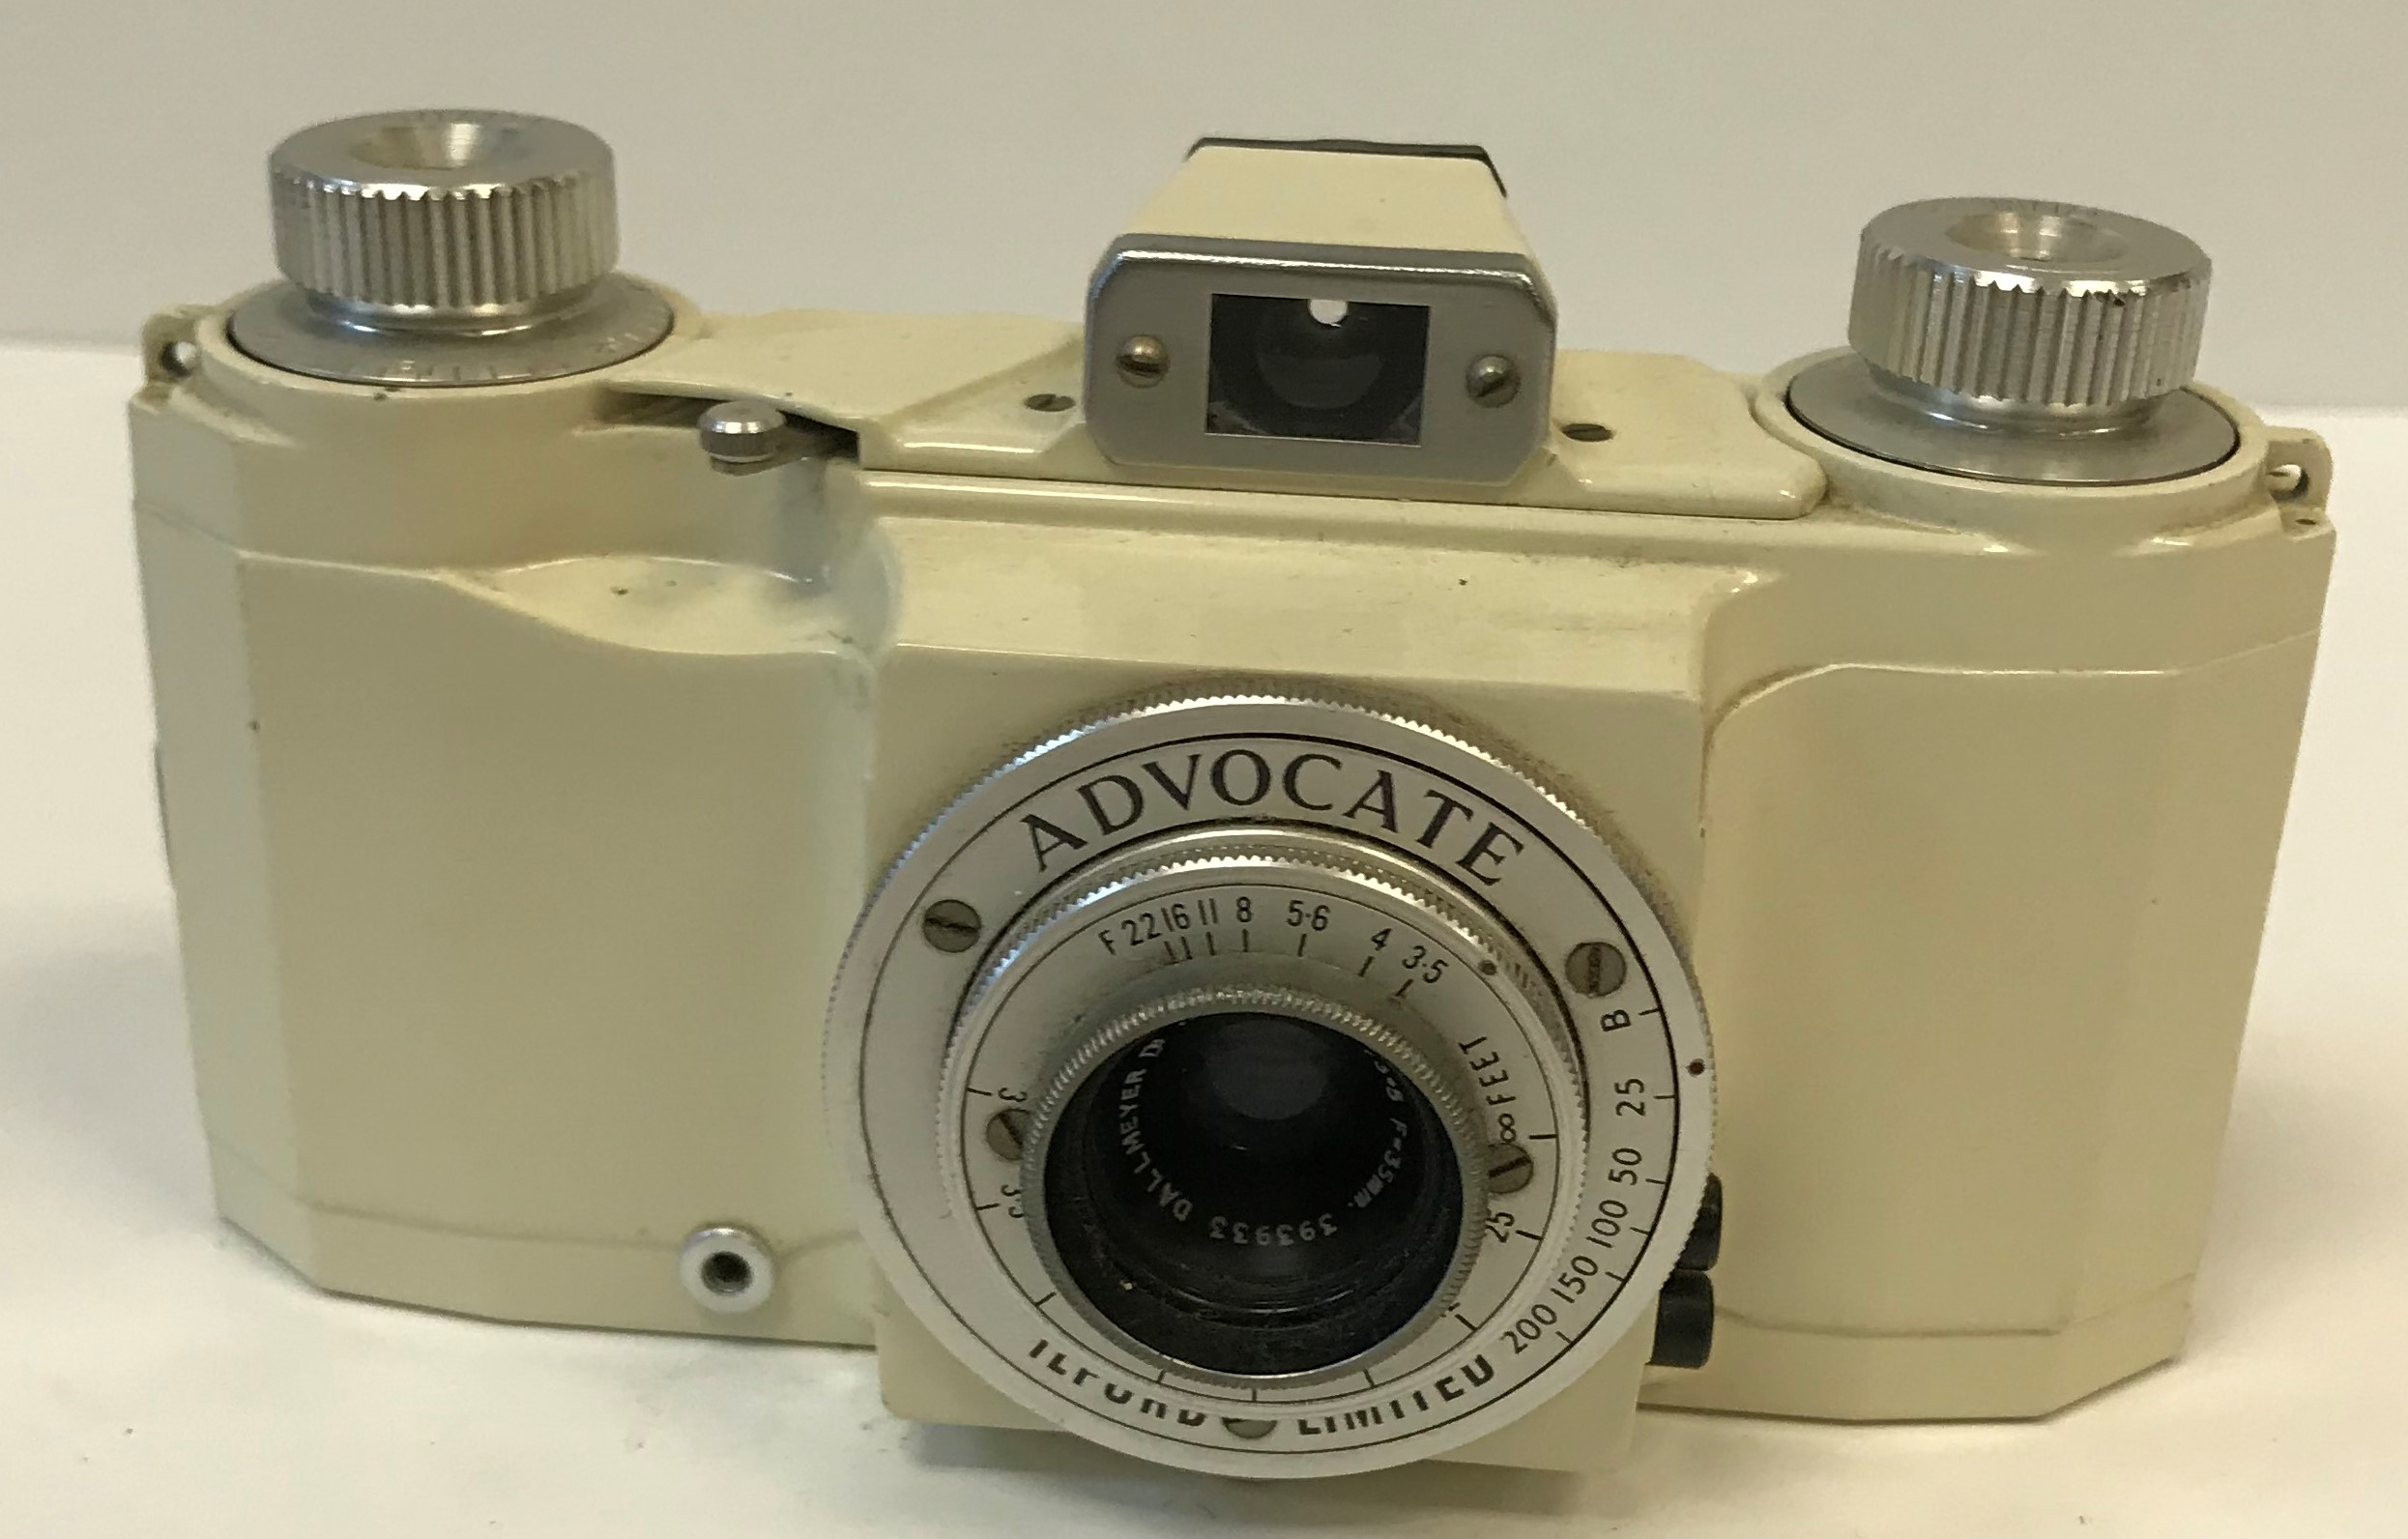 An Ilford Limited Advocate camera, cream enamelled